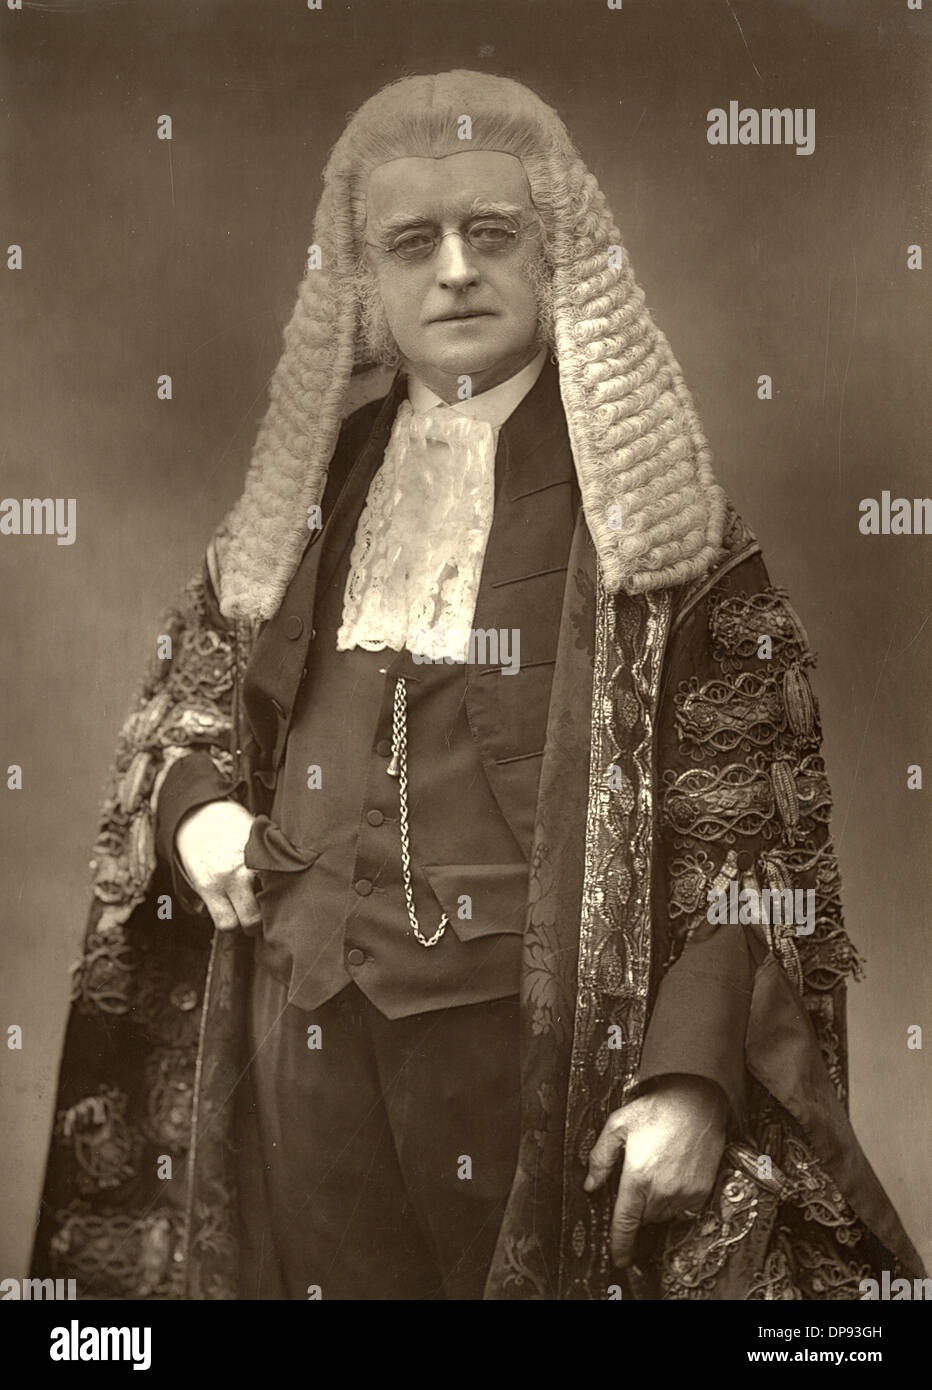 Sir Henry Cotton - Stock Image